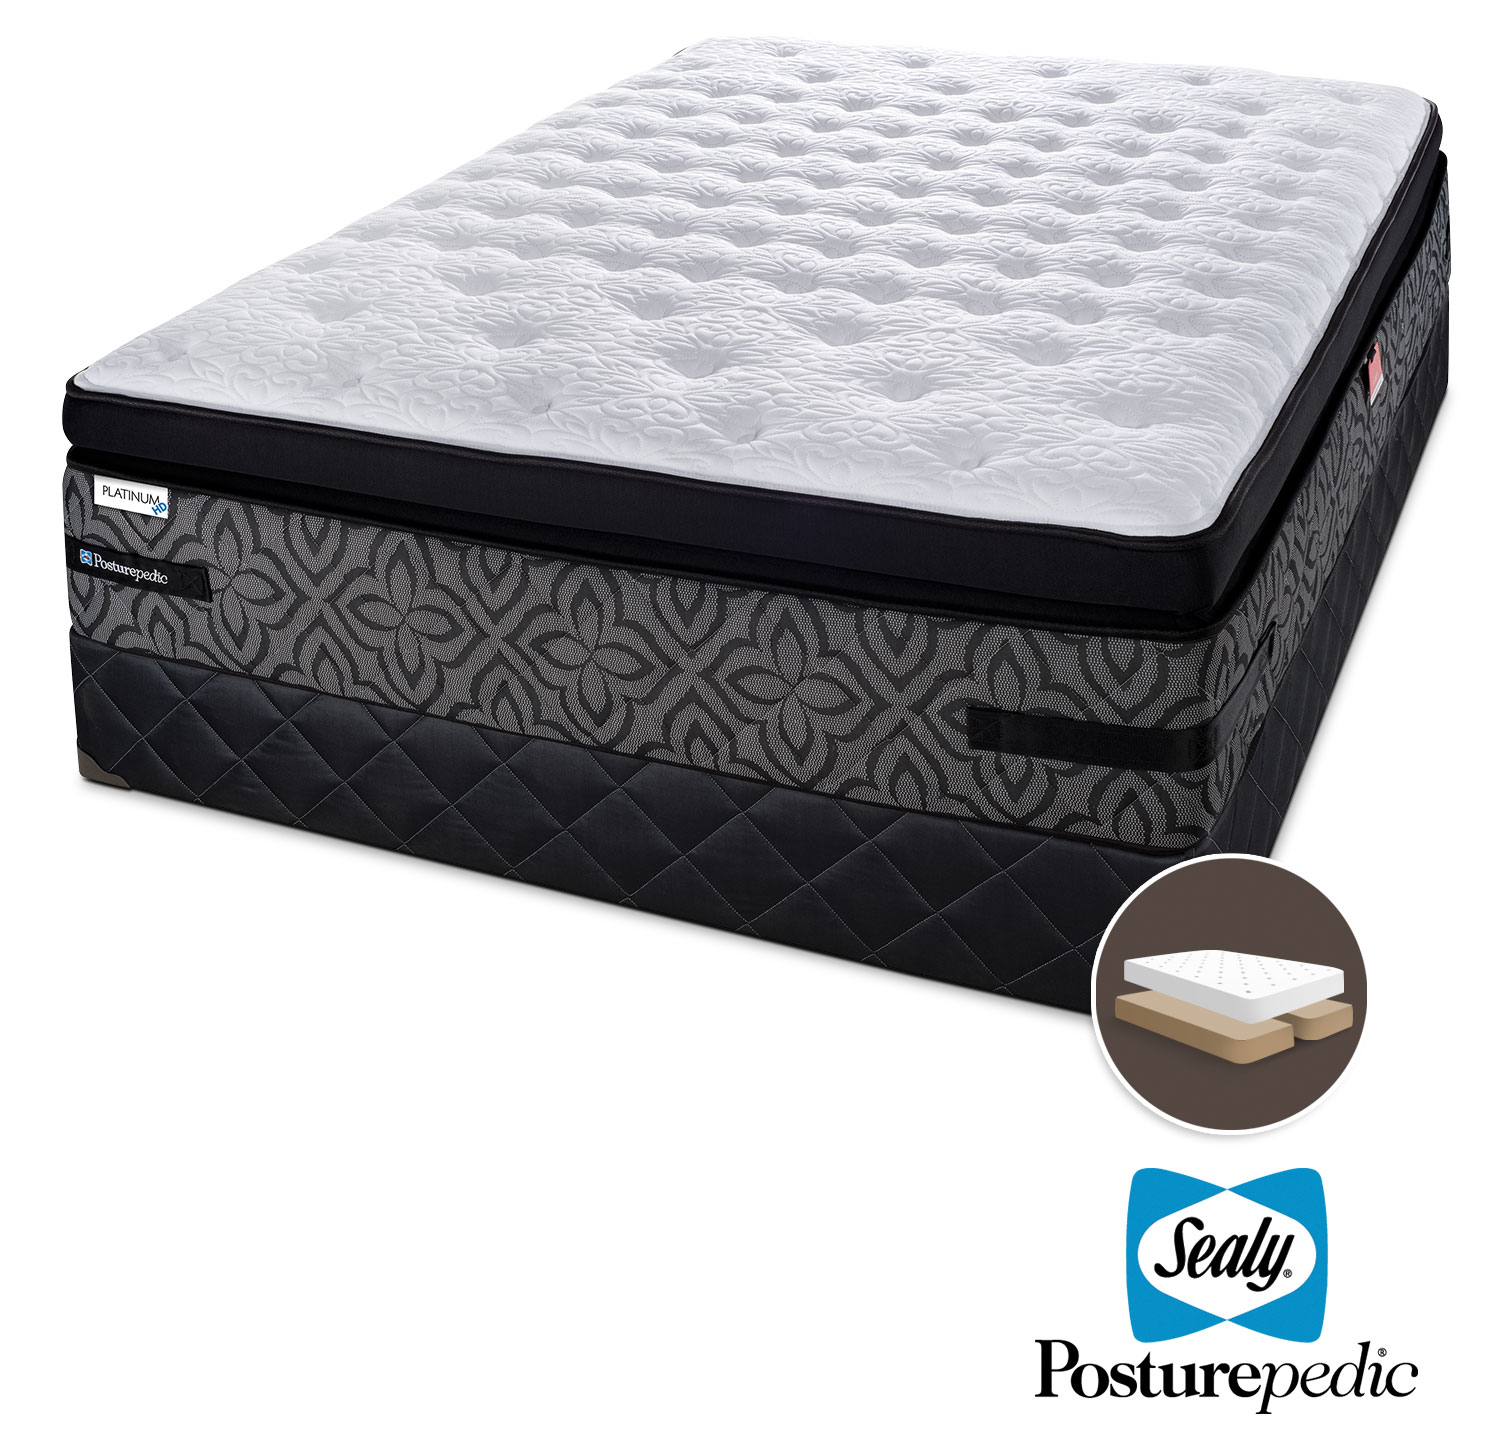 Sealy Posturepedic 3 K Cushion Firm King Mattress And Split Boxspring Set Leon 39 S